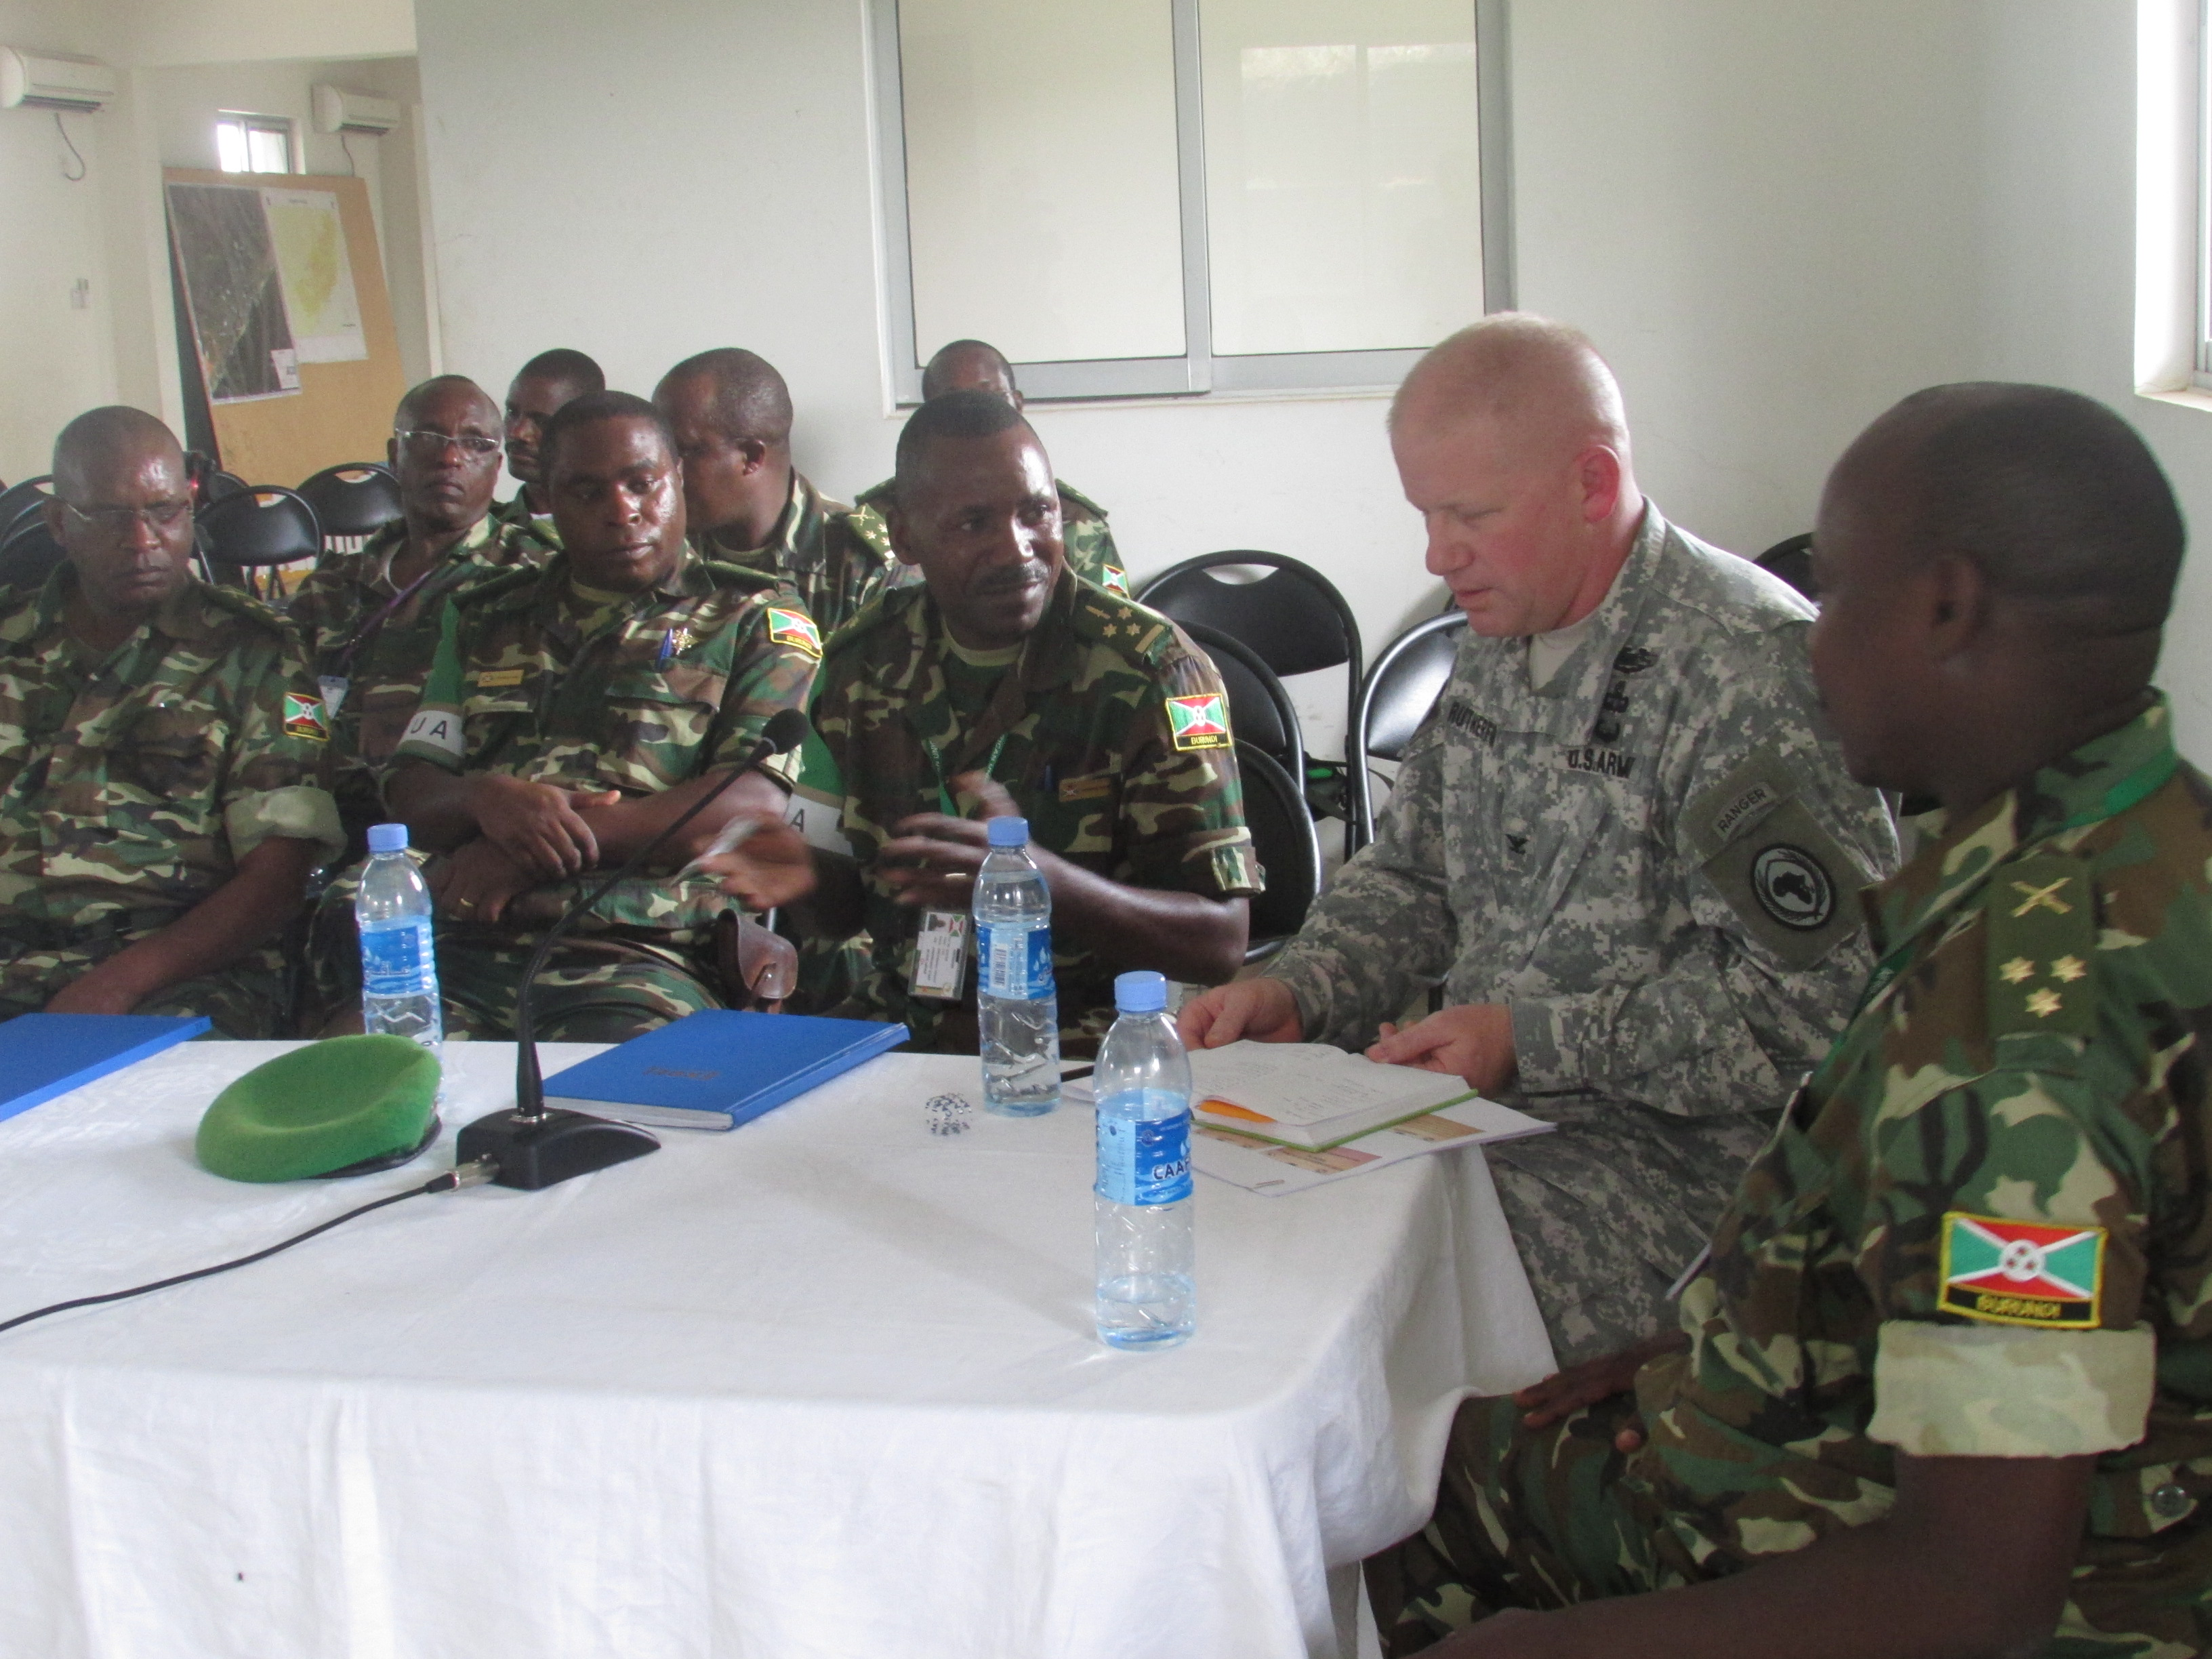 U.S. Army Col. Wilson Rutherford, right, U.S. Military Coordination Cell Mogadisu, discusses support requirements for a pending Burundi National Defense Force offensive during a visit to the African Union Mission in Somalia Sector 5 Headquarters located in northern Mogadishu.  AMISOM forces have been instrumental in helping Somali National Security Forces push the Al Qaeda-affiliated terror group, al Shabaab, out of much of southern Somalia including most major towns and cities. (BNDF Courtesy Photo)